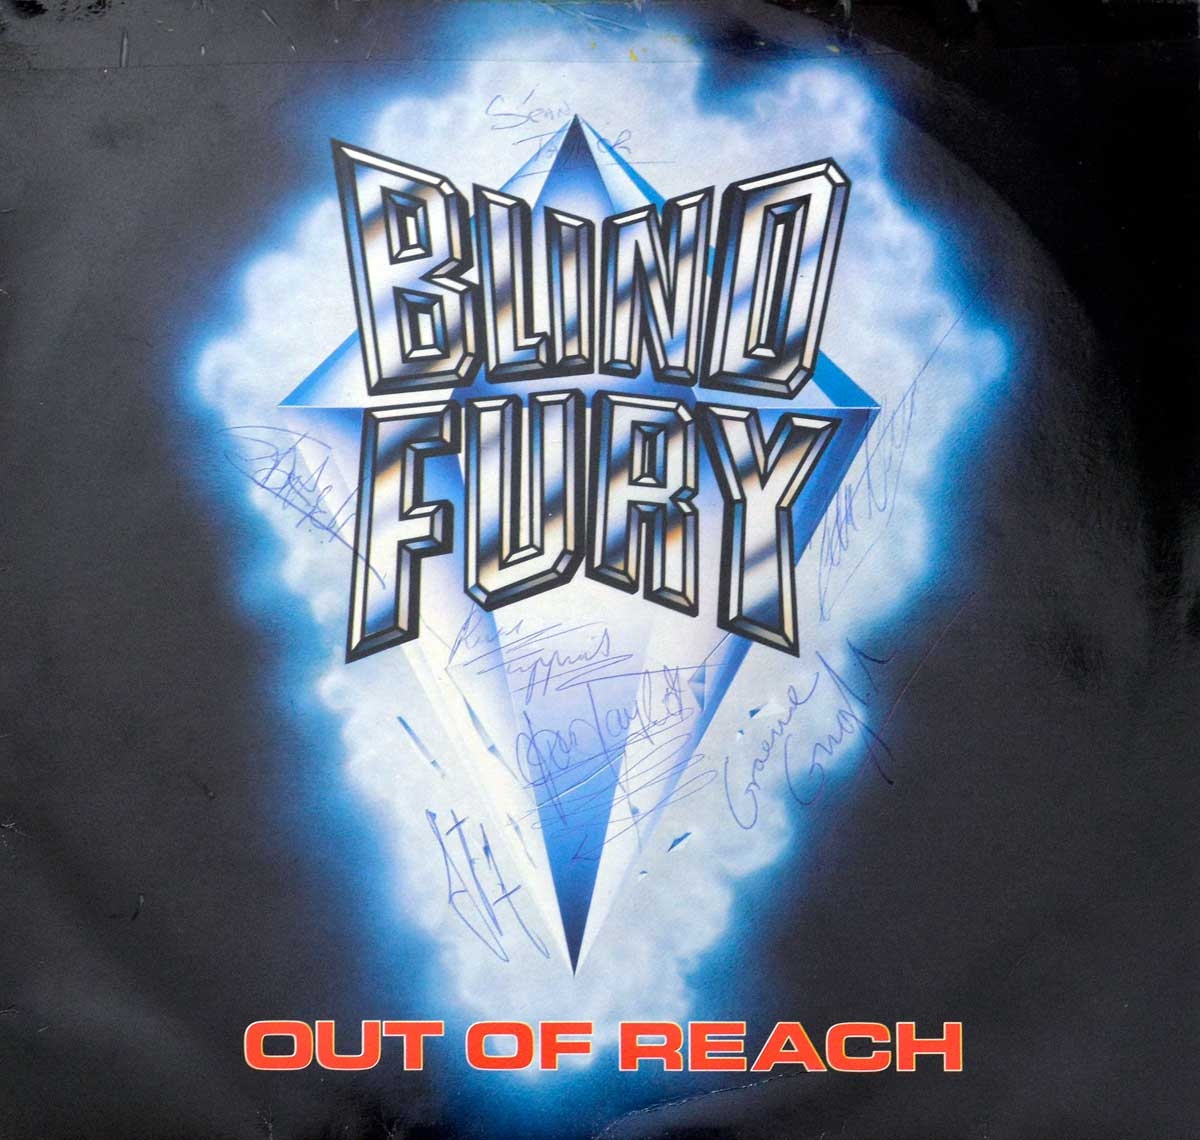 Album Front Cover Photo of BLIND FURY - Out of Reach Autographed (OIS)